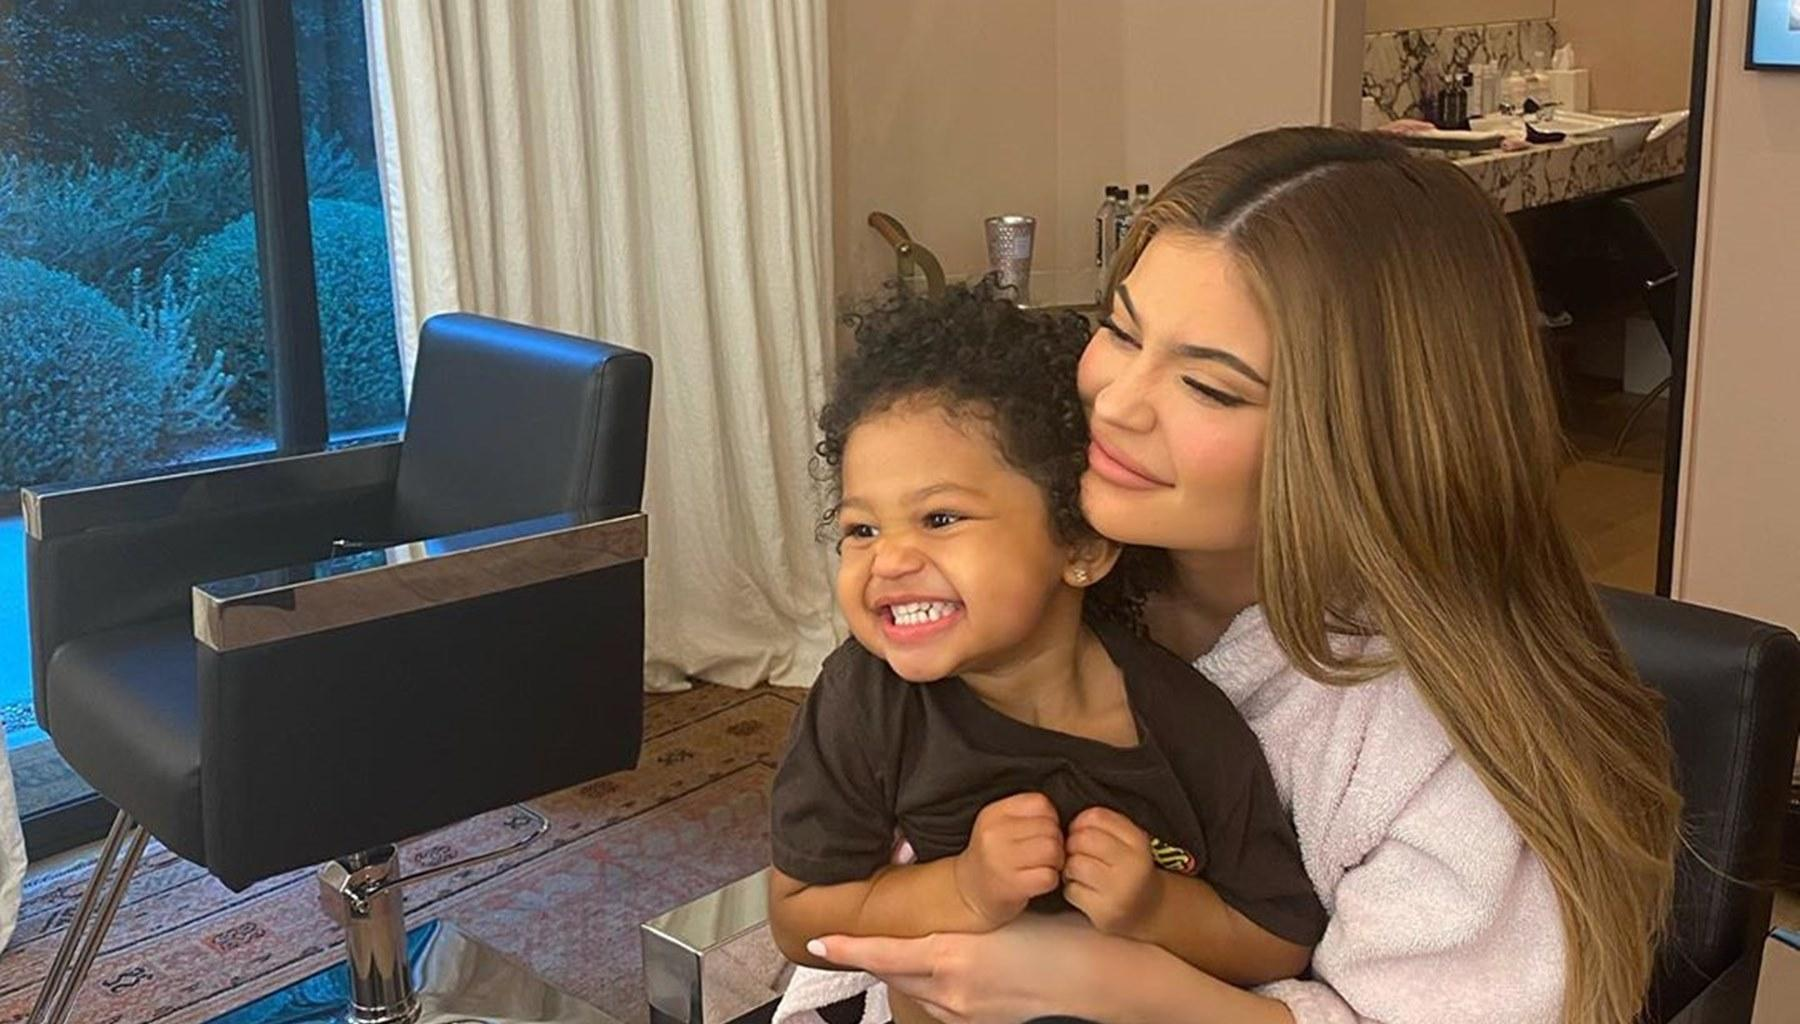 Kylie Jenner Is Being Applauded For Her Stellar Parenting Skills After She Shared This Video Of Stormi Webster